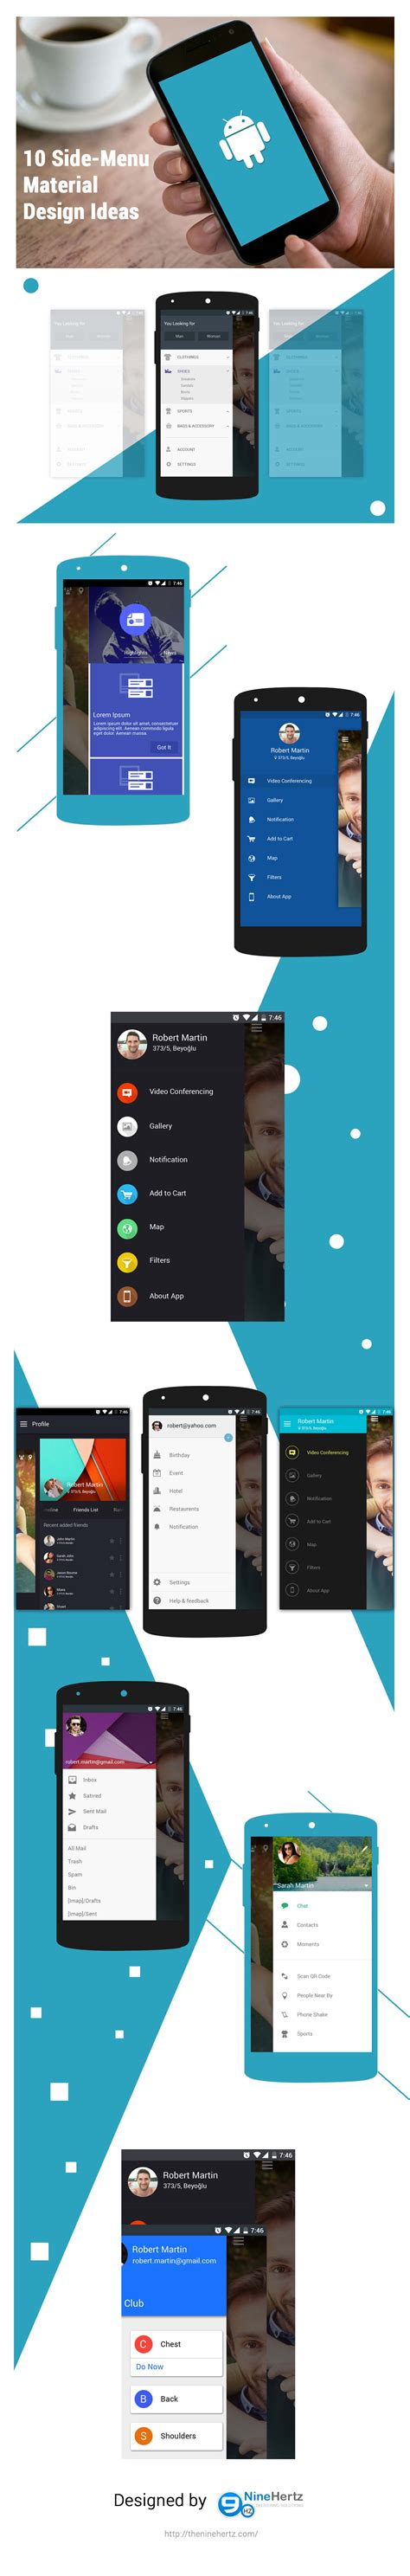 material design ideas 10 side menu material design ui ideas